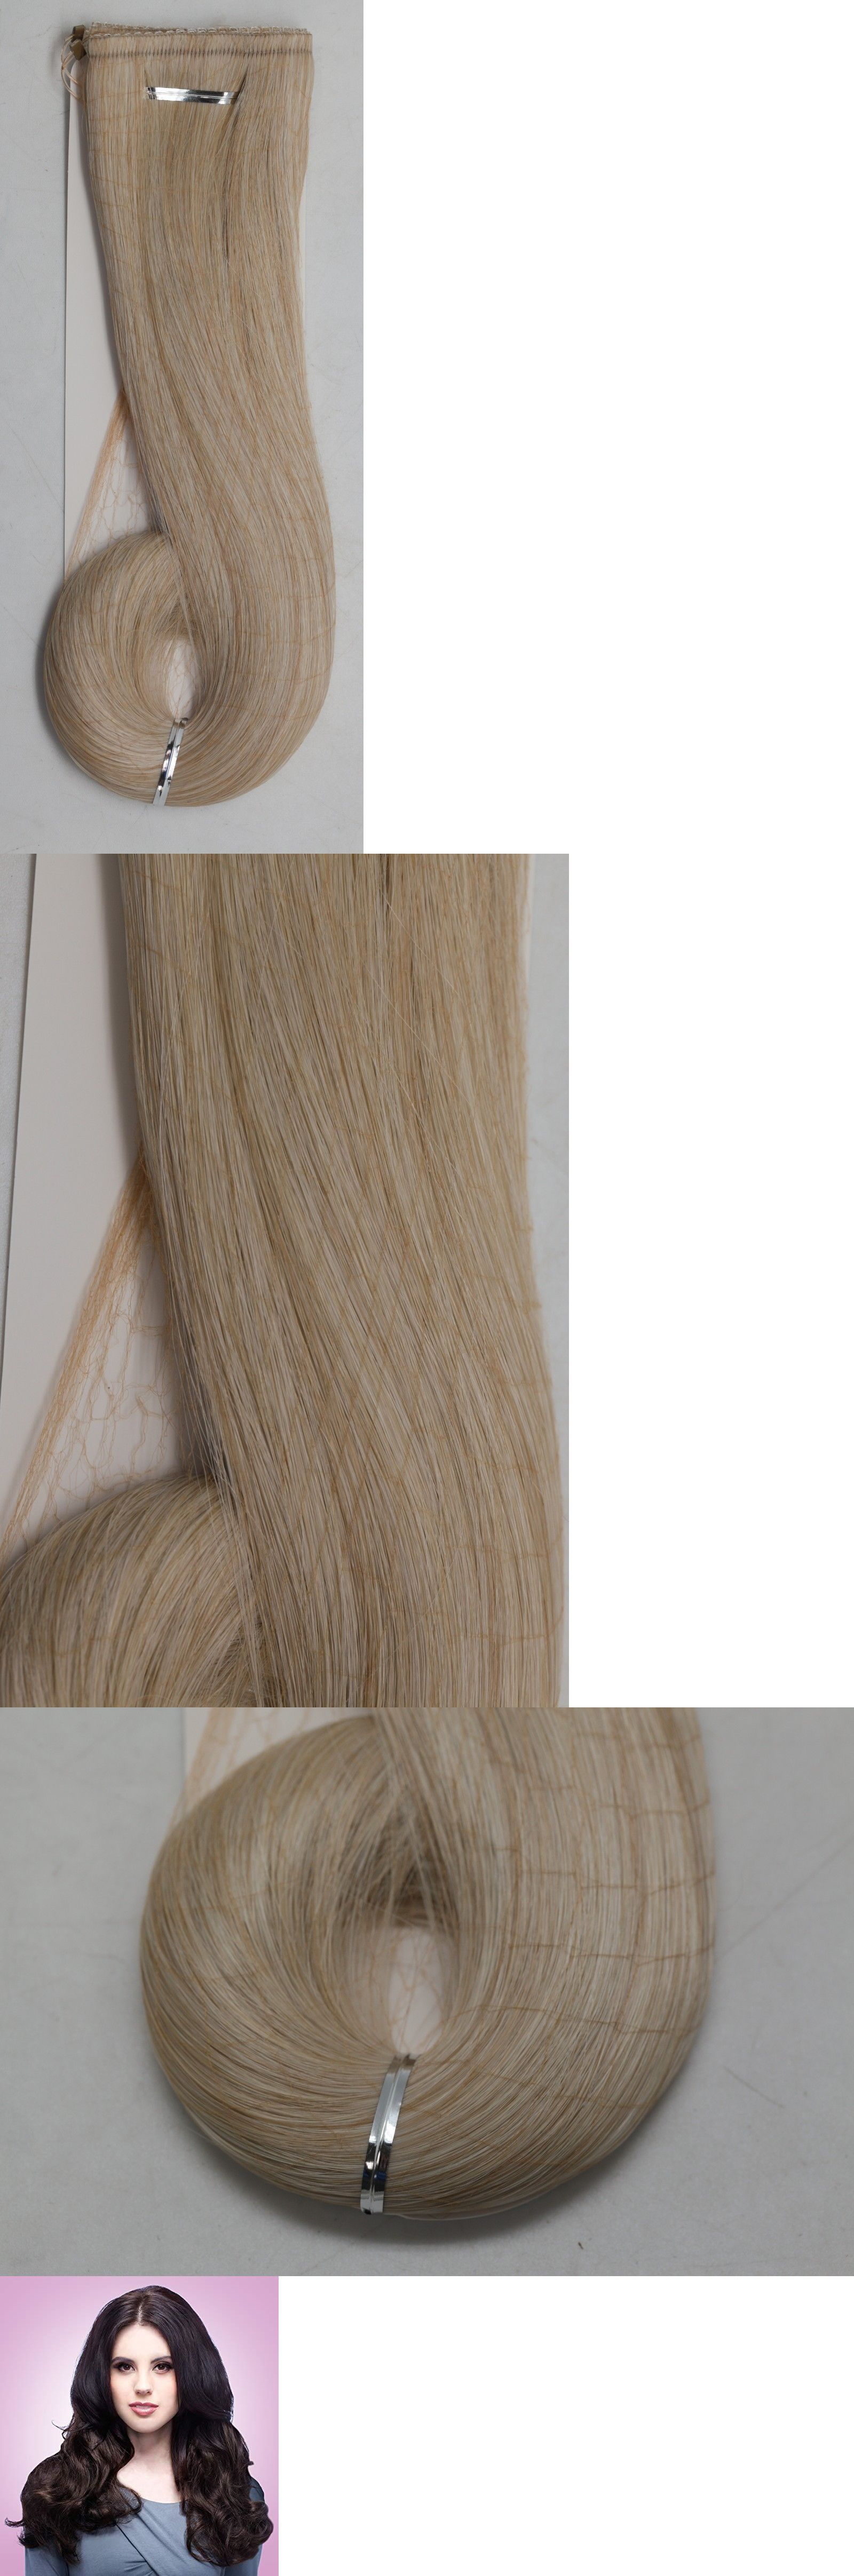 Daisy Fuentes Double Layer Secret Extensions Light Golden Blonde 223